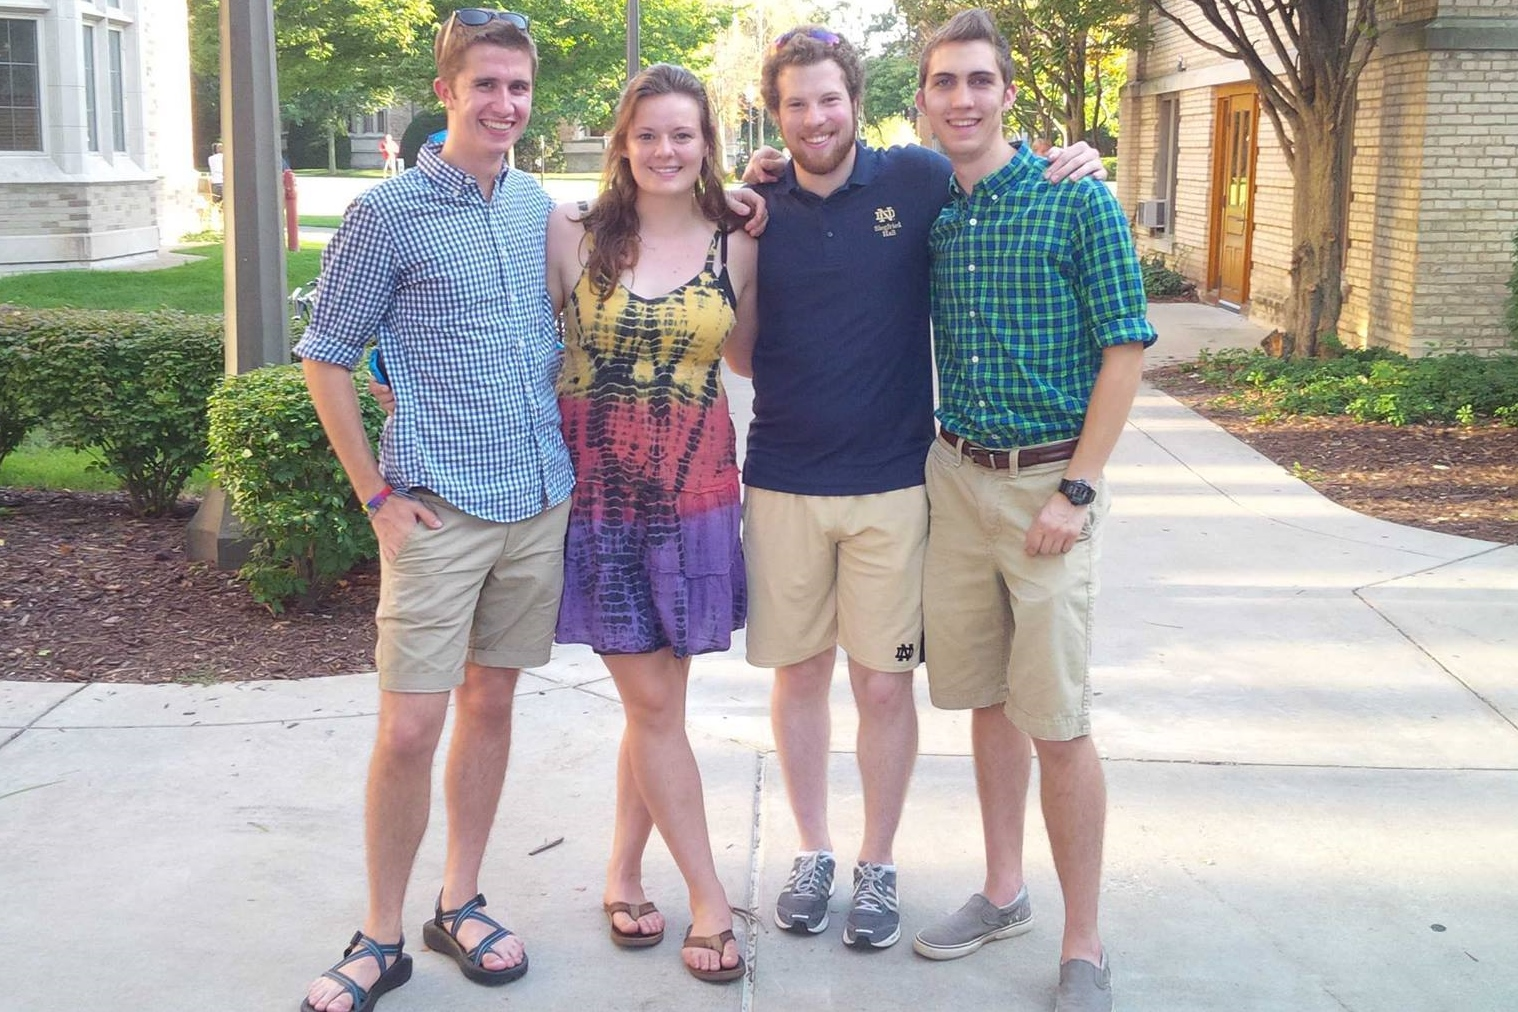 Connor Hayes (co-president & co-founder), Lauren Morisseau, Alex Coccia (two leaders of the 4 to 5 movement), and me.